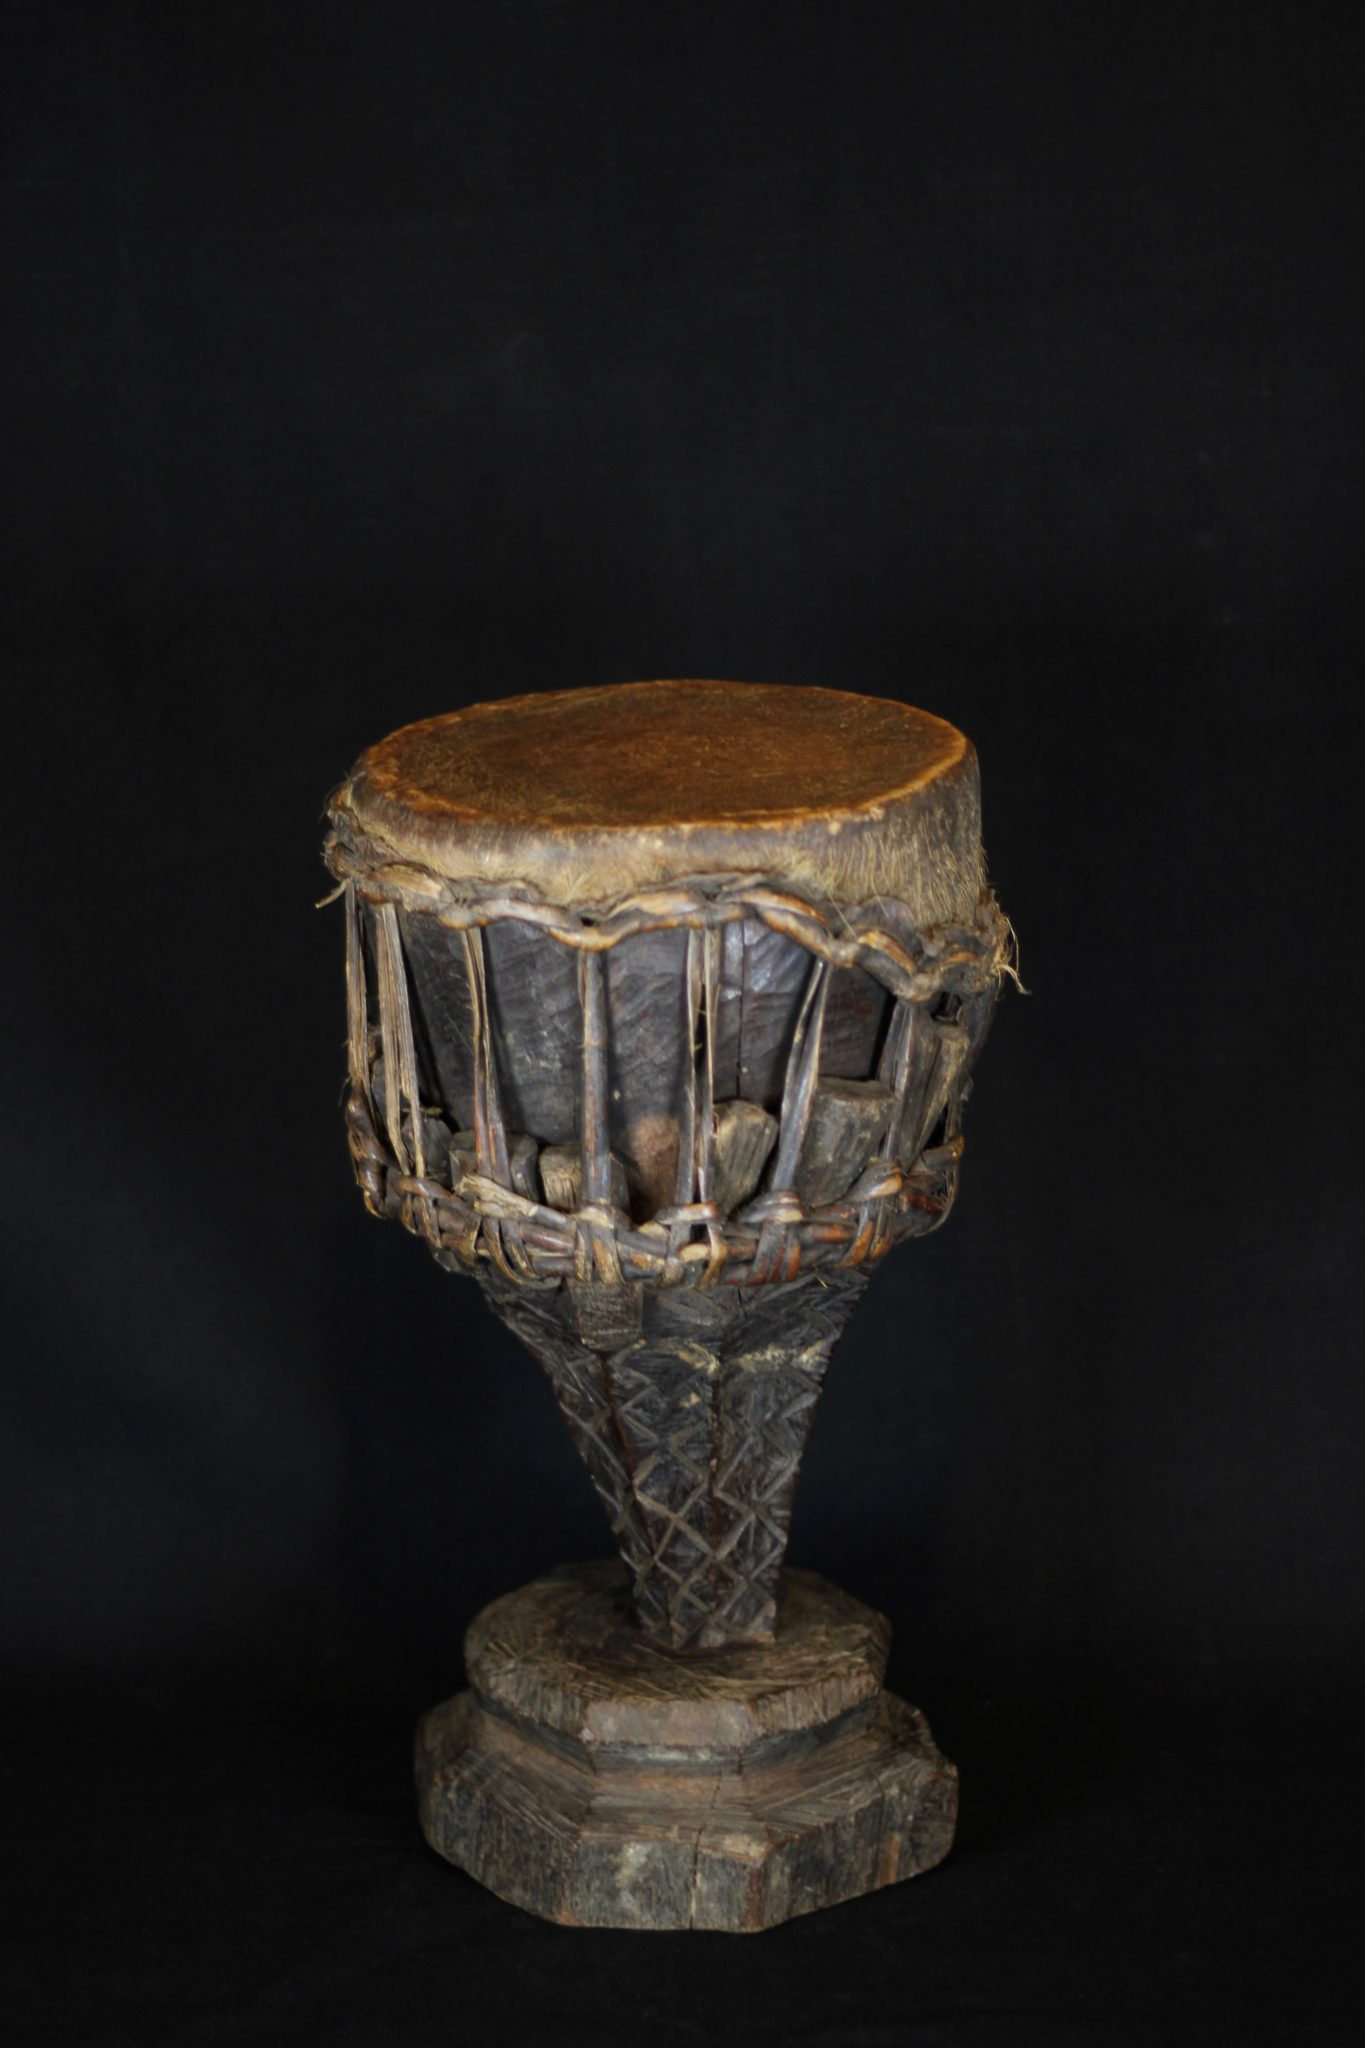 "Shaman Drum, Sumba Island, Indonesia, Early to mid 20th c, Animal skin stretched over wood, Used by shaman to initiate and maintain a trance state during rituals, 17 ½"" x 10 ½' x 10"", $490."